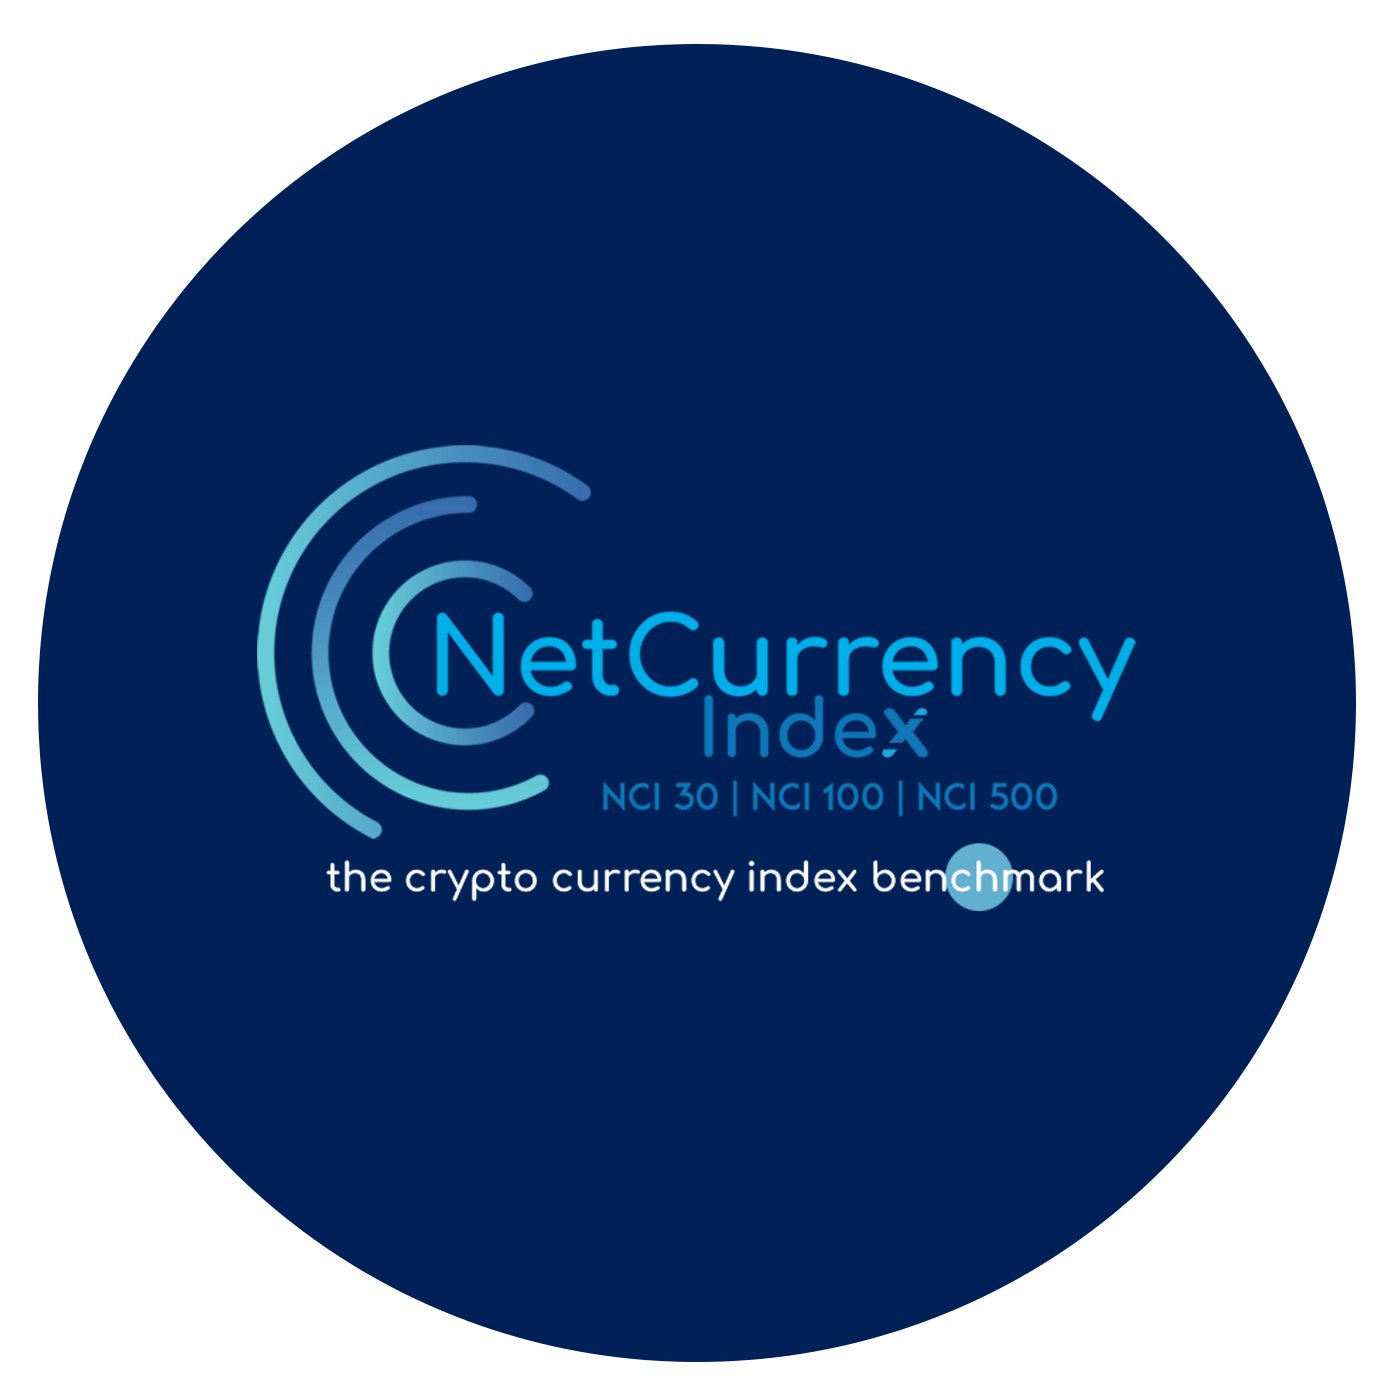 Net Currency Index